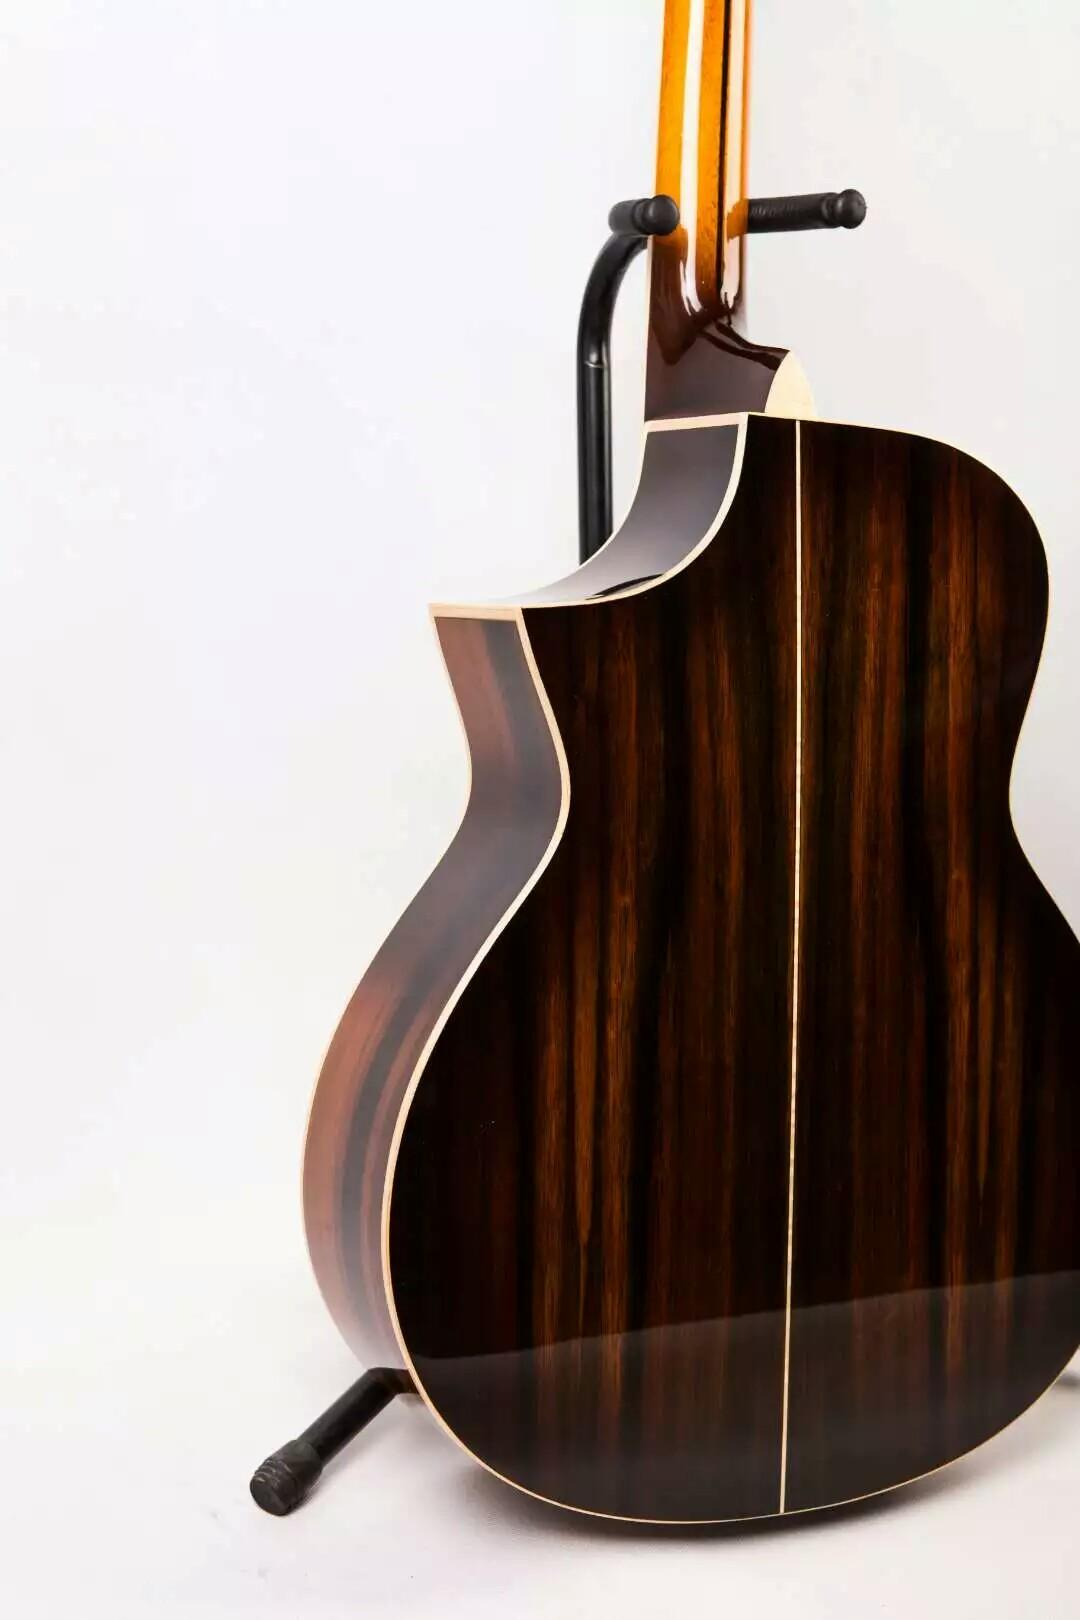 The new rhyme's hand guitar, panel west tical cloud unlined upper garment, lientang Indian rosewood. Quality assurance, not satisfied can re